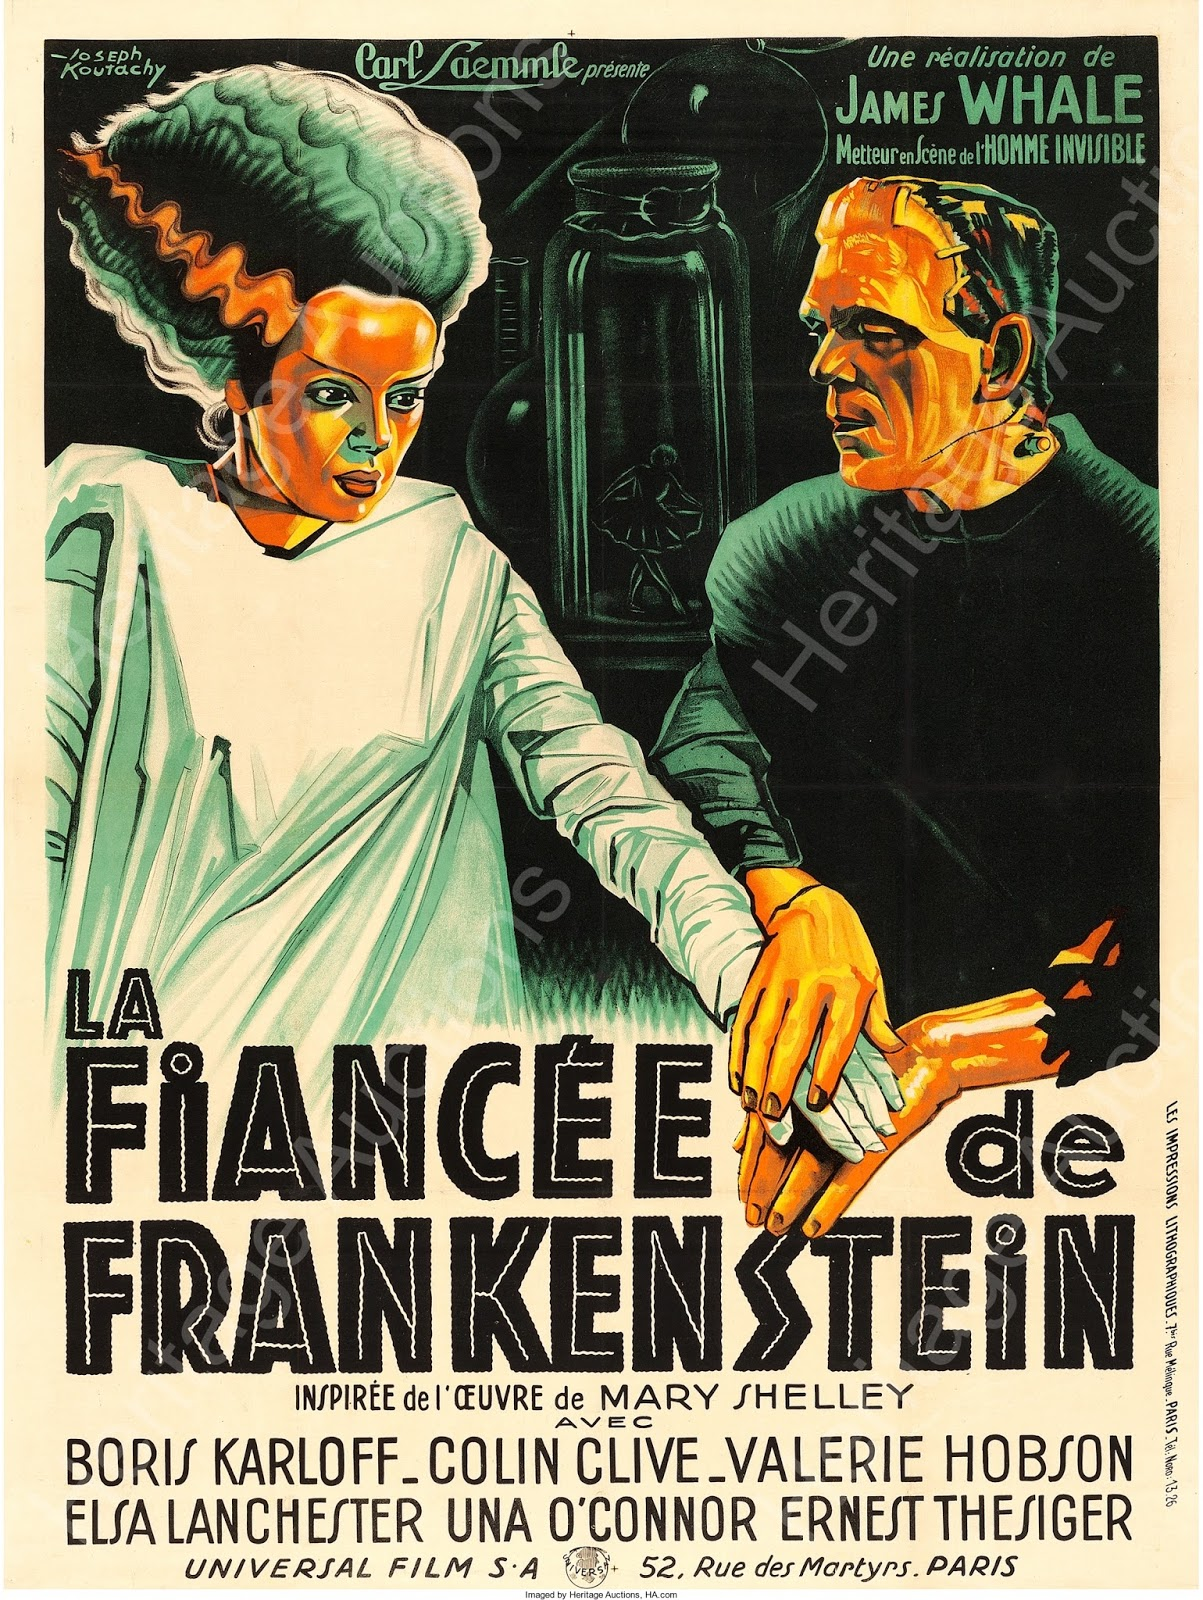 Rare bride of frankenstein movie poster